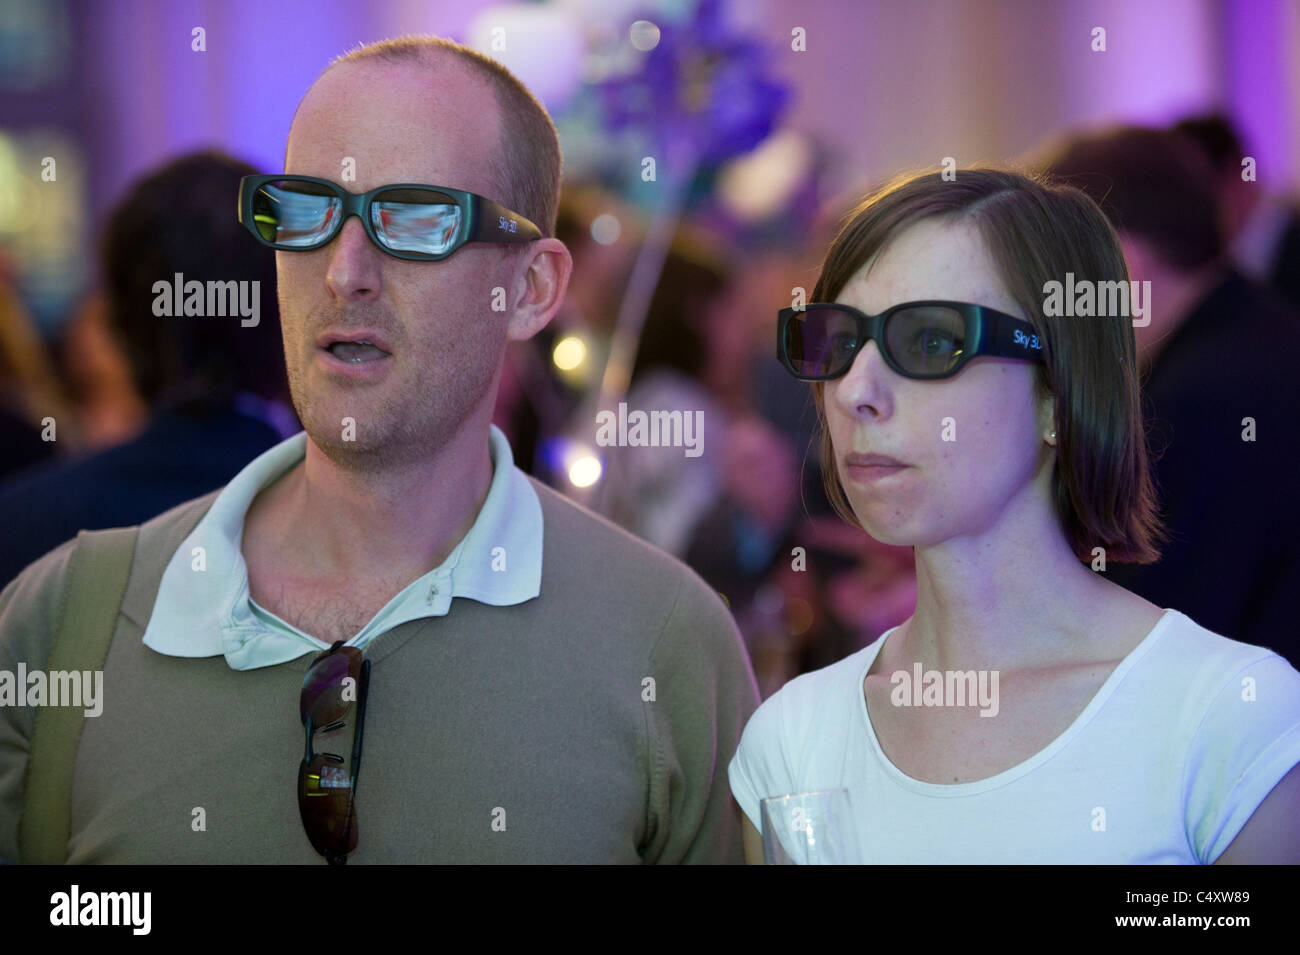 8c2e8cd3009 wearing 3D glasses watching tv television Stock Photo  37469945 - Alamy